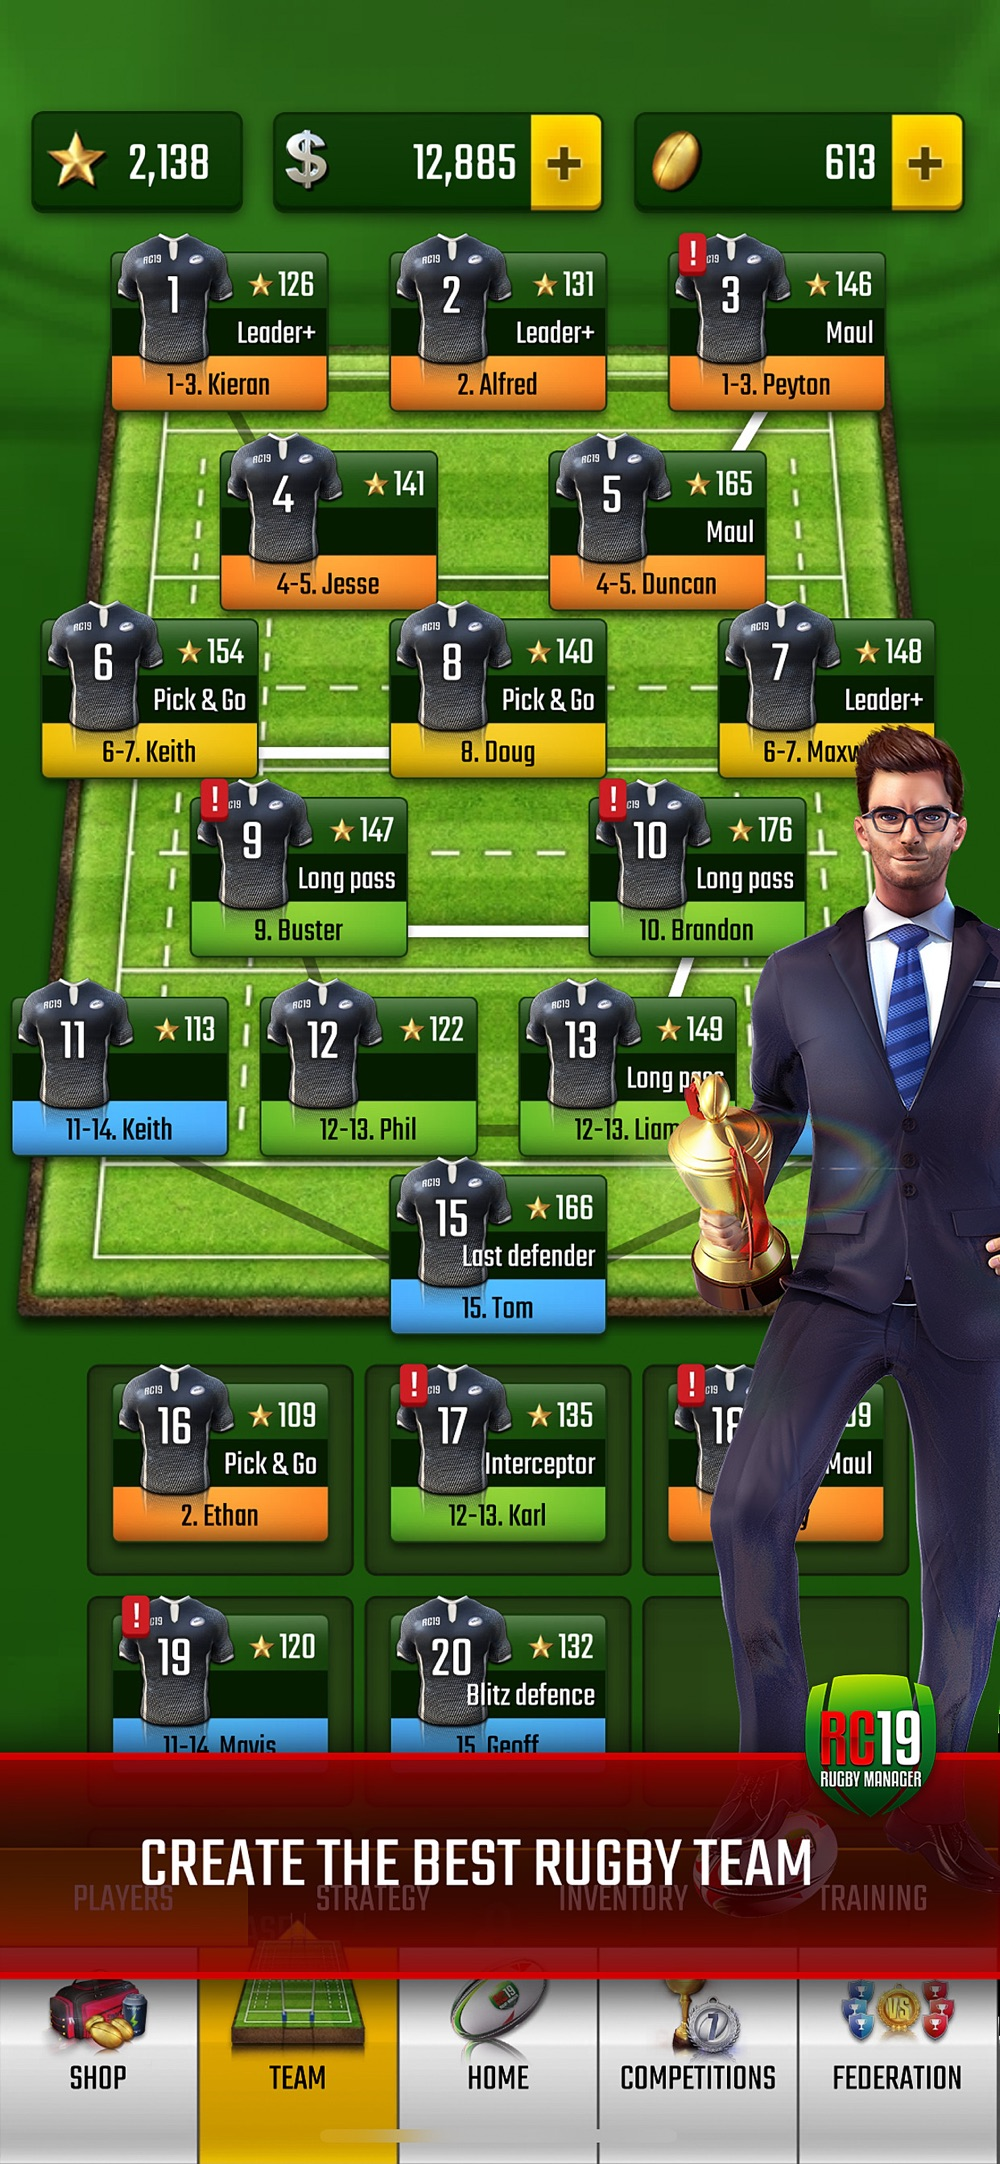 Hack tool for Rugby Champions 19